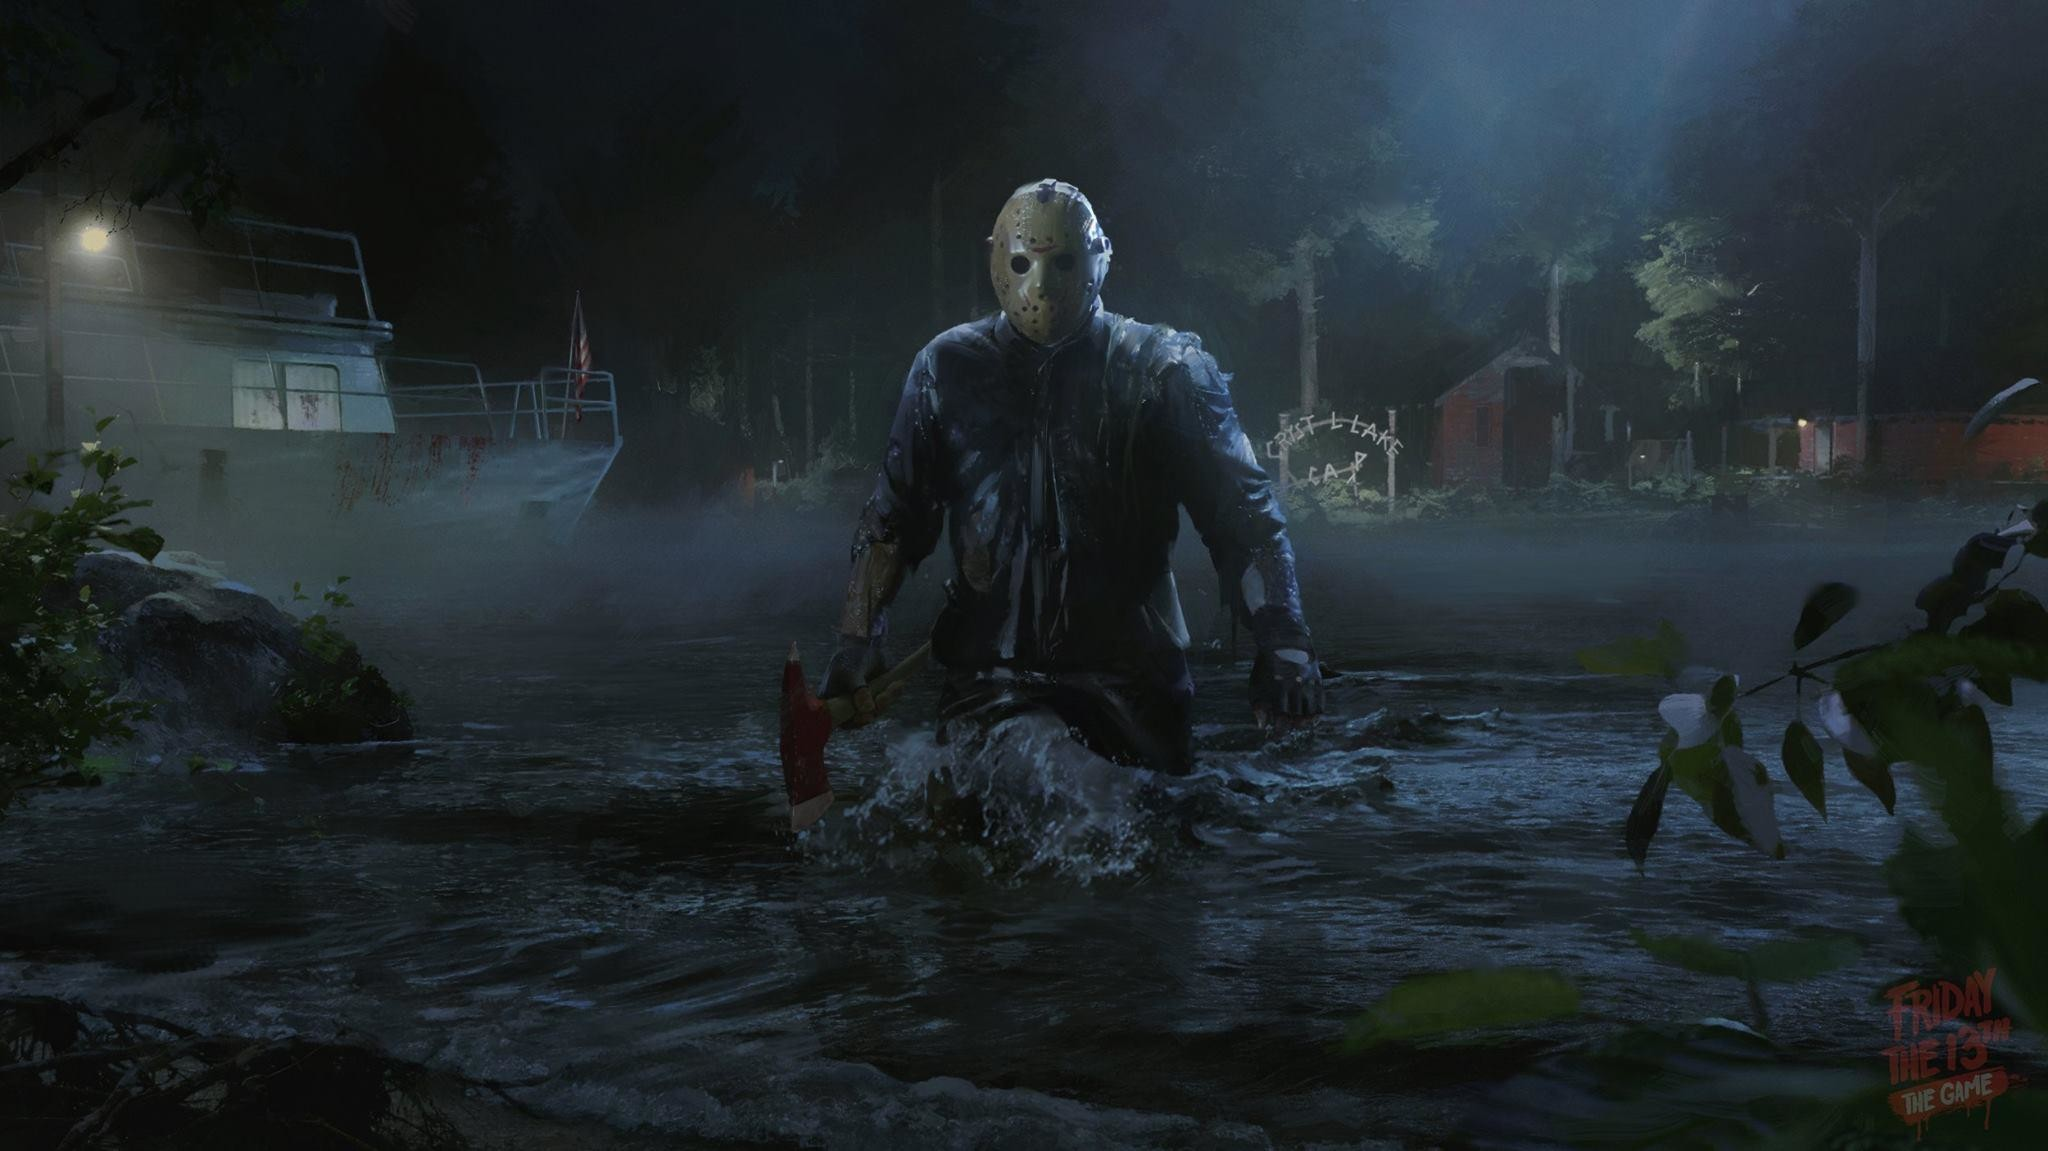 Res: 2048x1151, 7 Friday The 13th: The Game HD Wallpapers | Backgrounds .